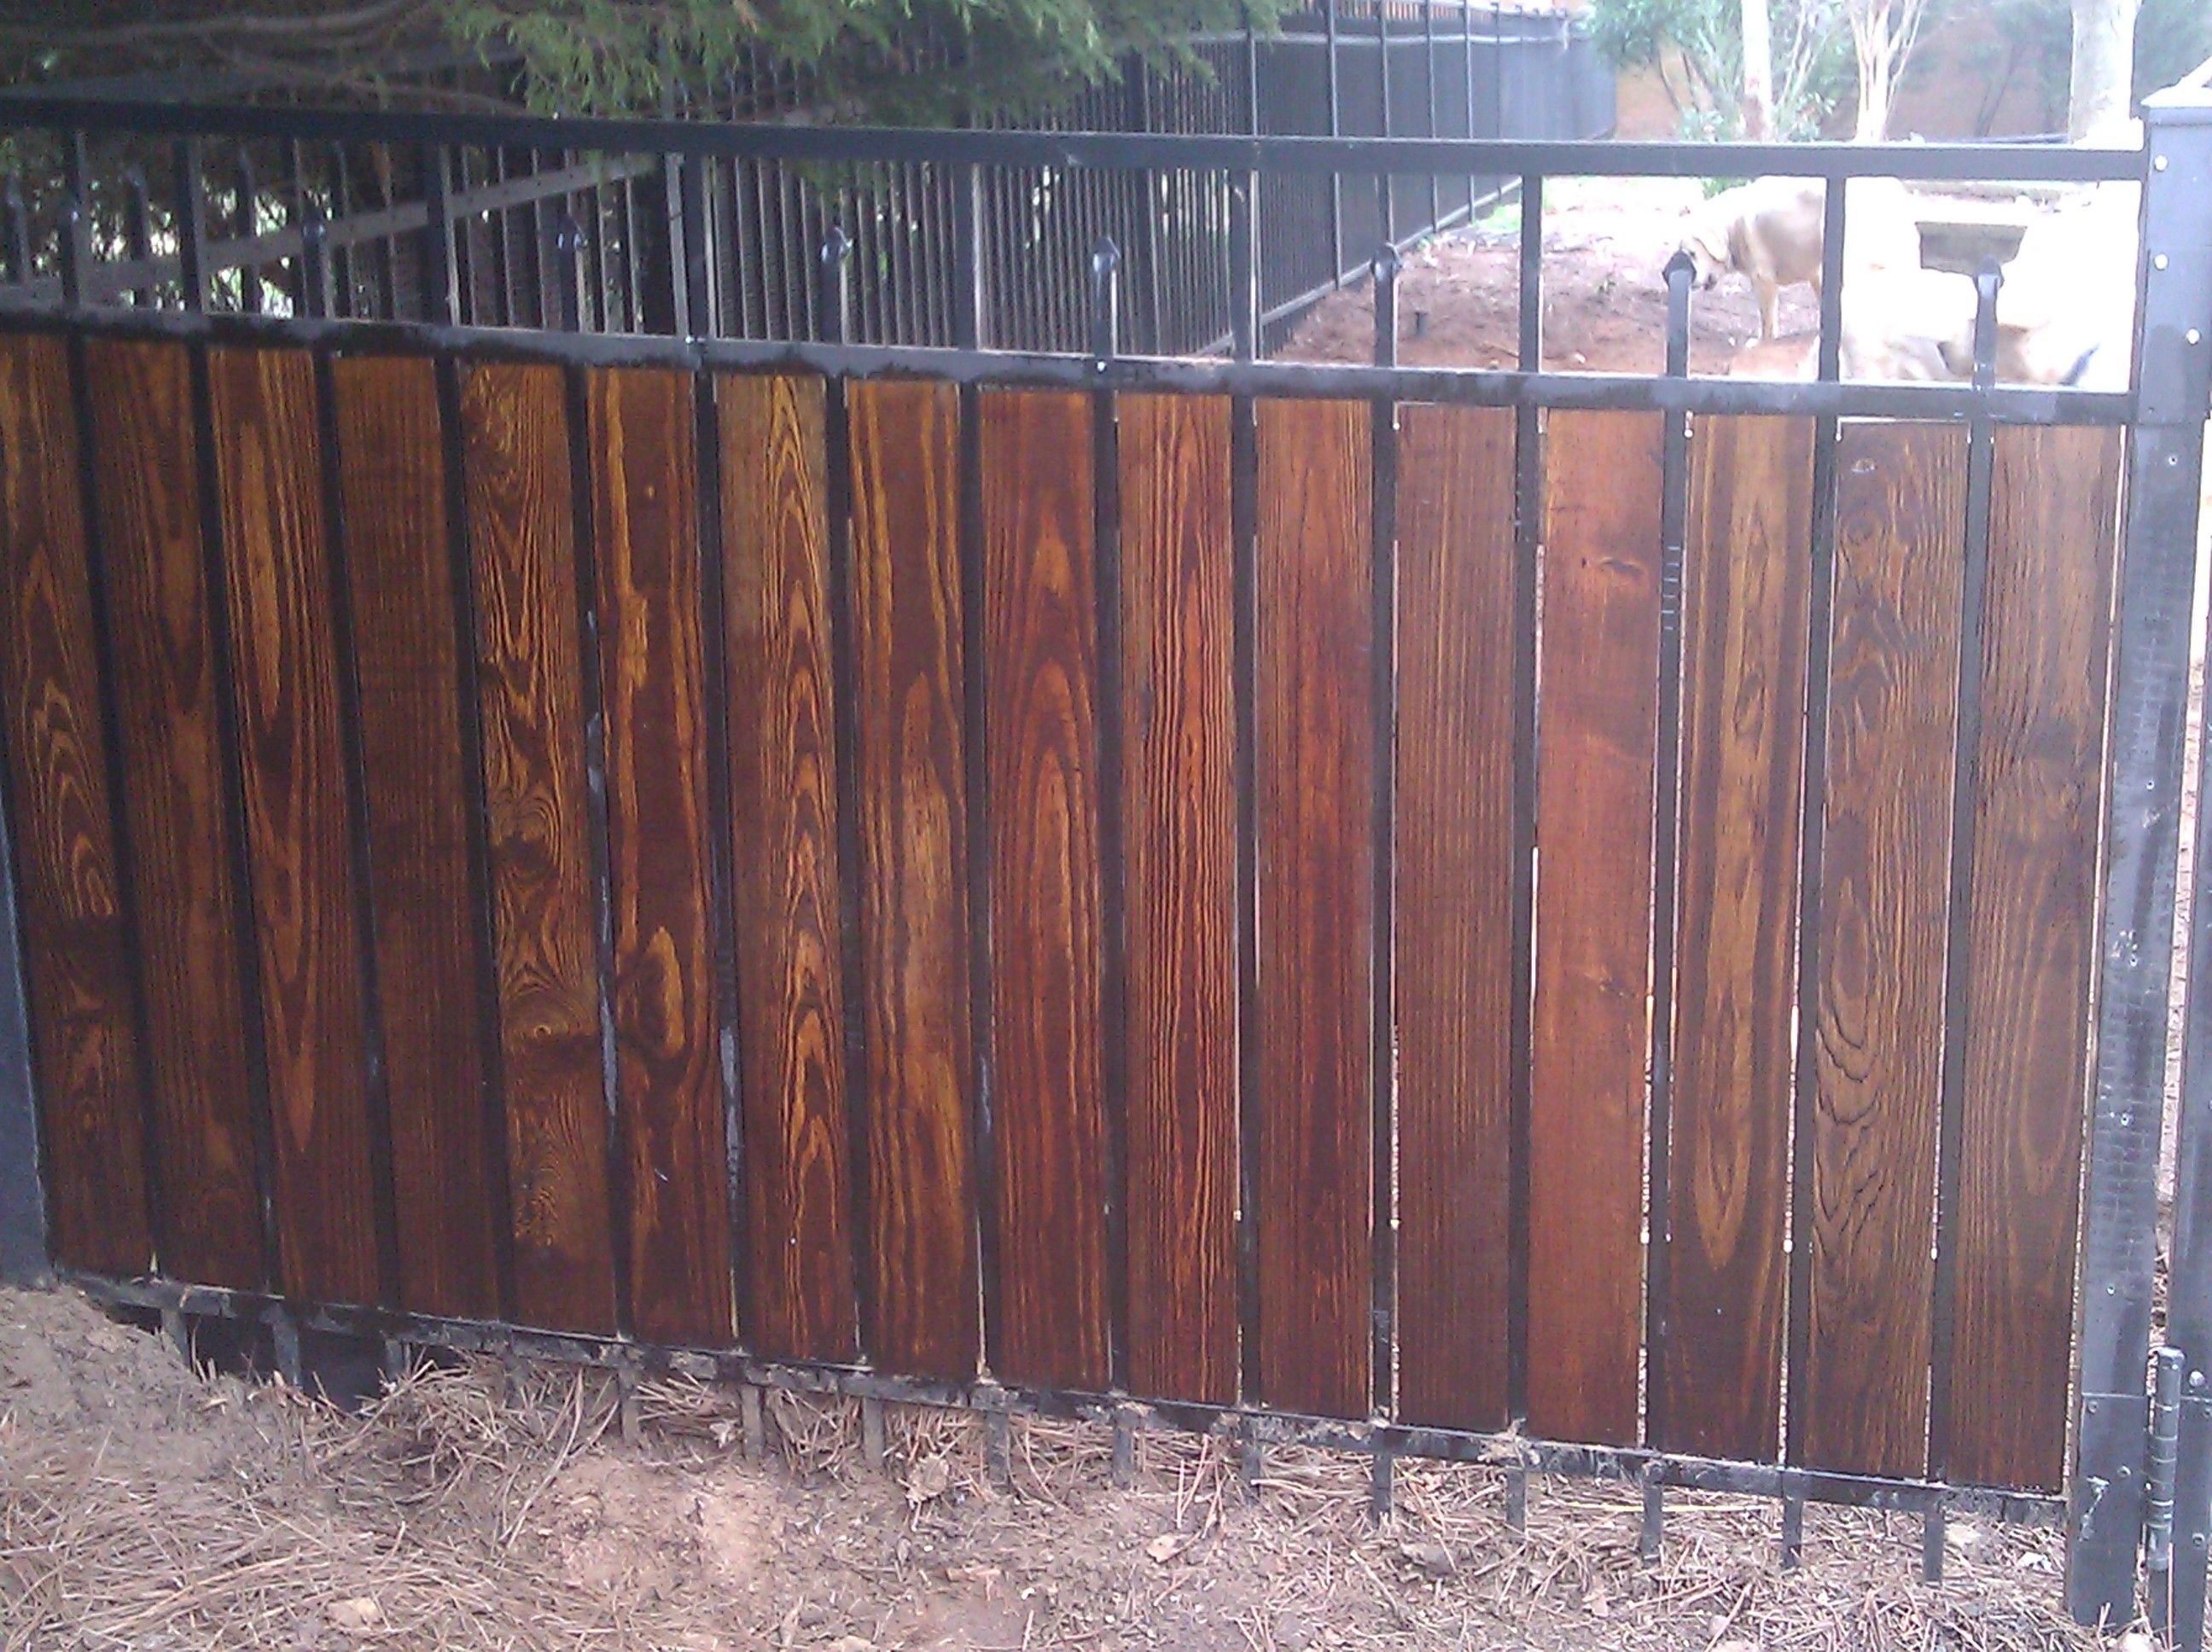 Pin By Stephanie Reese On For The Home Fence Design Wood Fence